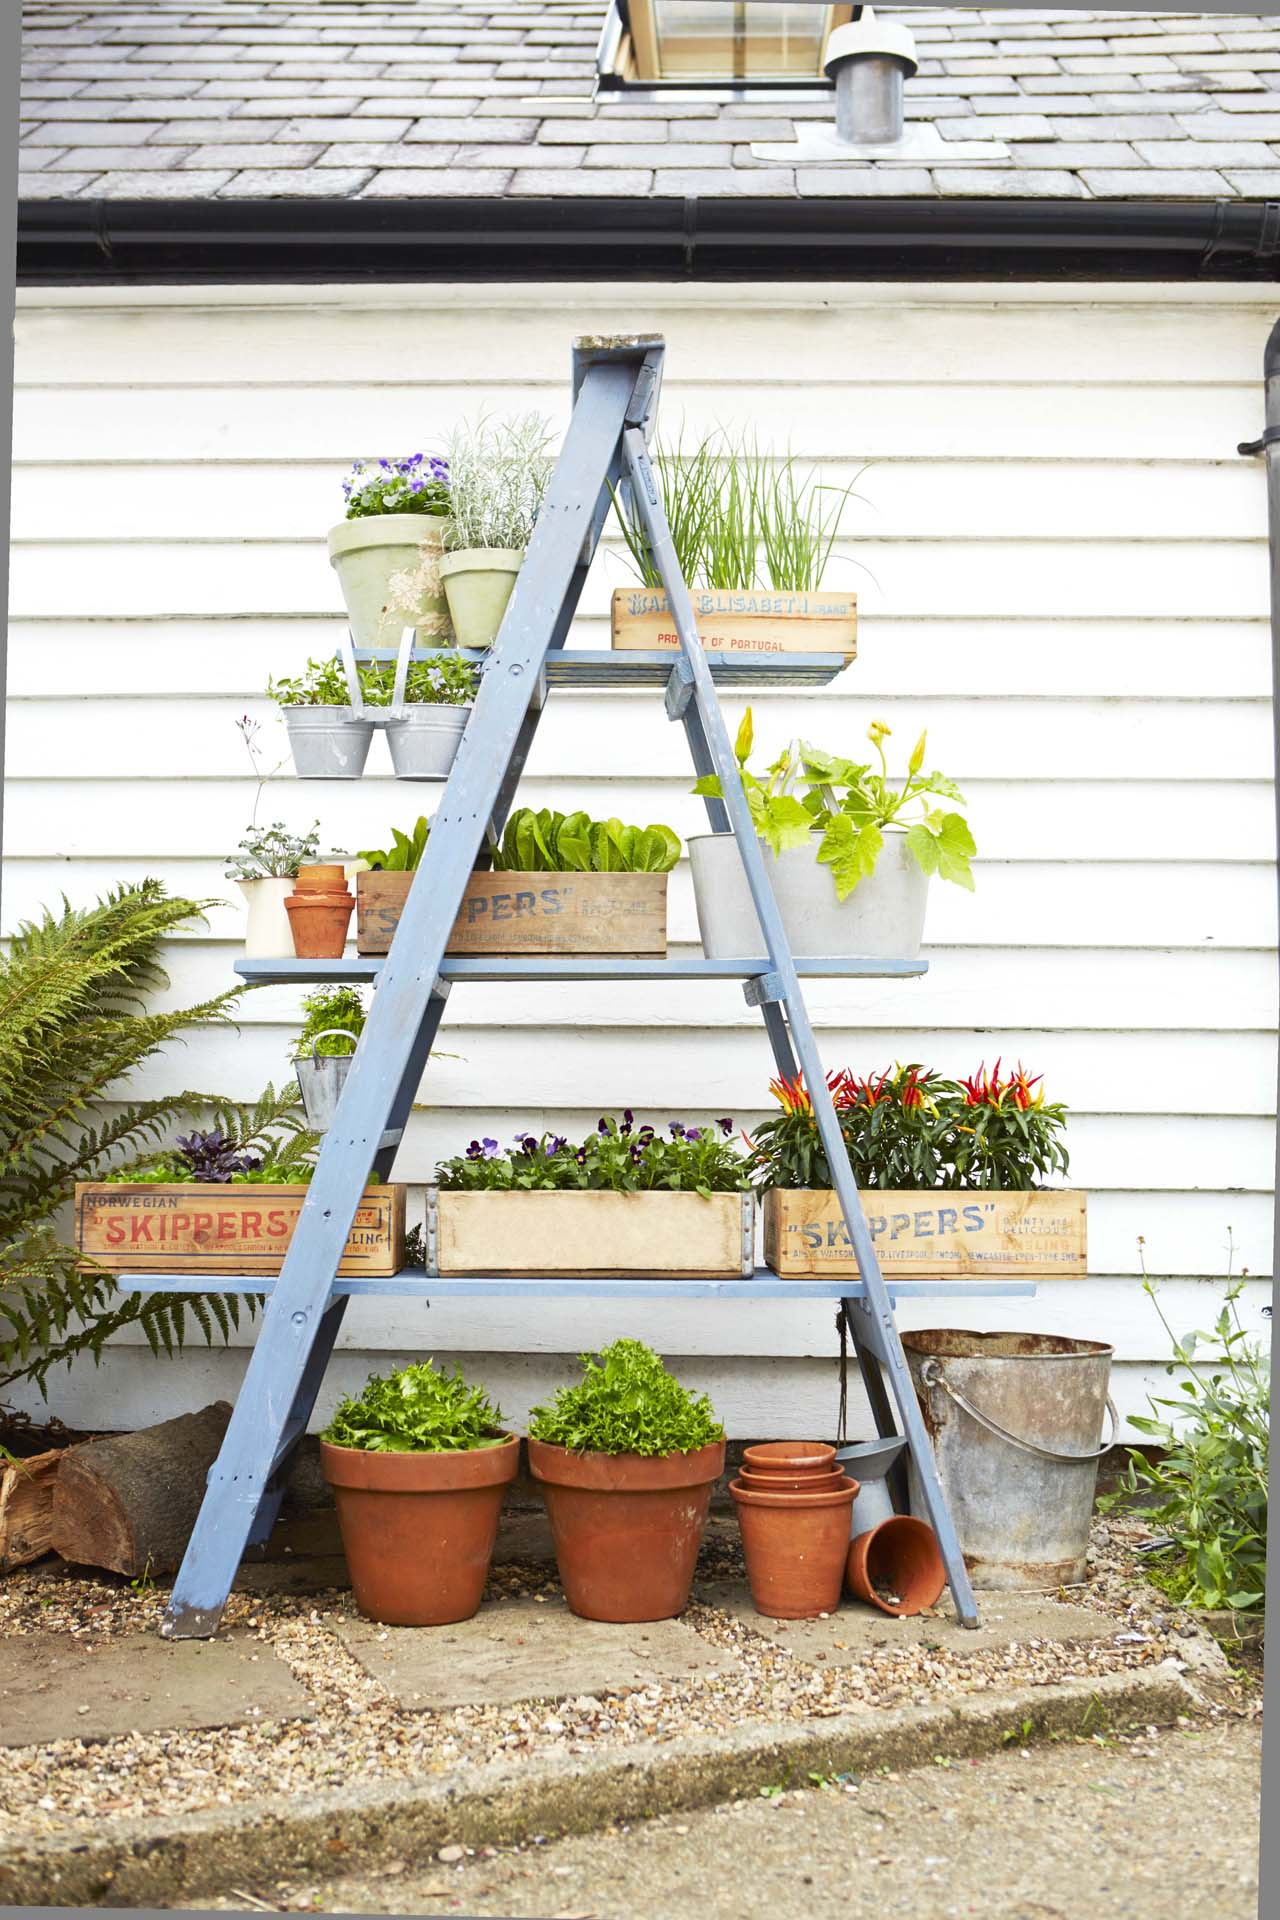 How To Decorate With Vintage Ladders Ways To Organize With Old, Garden Idea  · Garden Decoration Ideas Creative ...